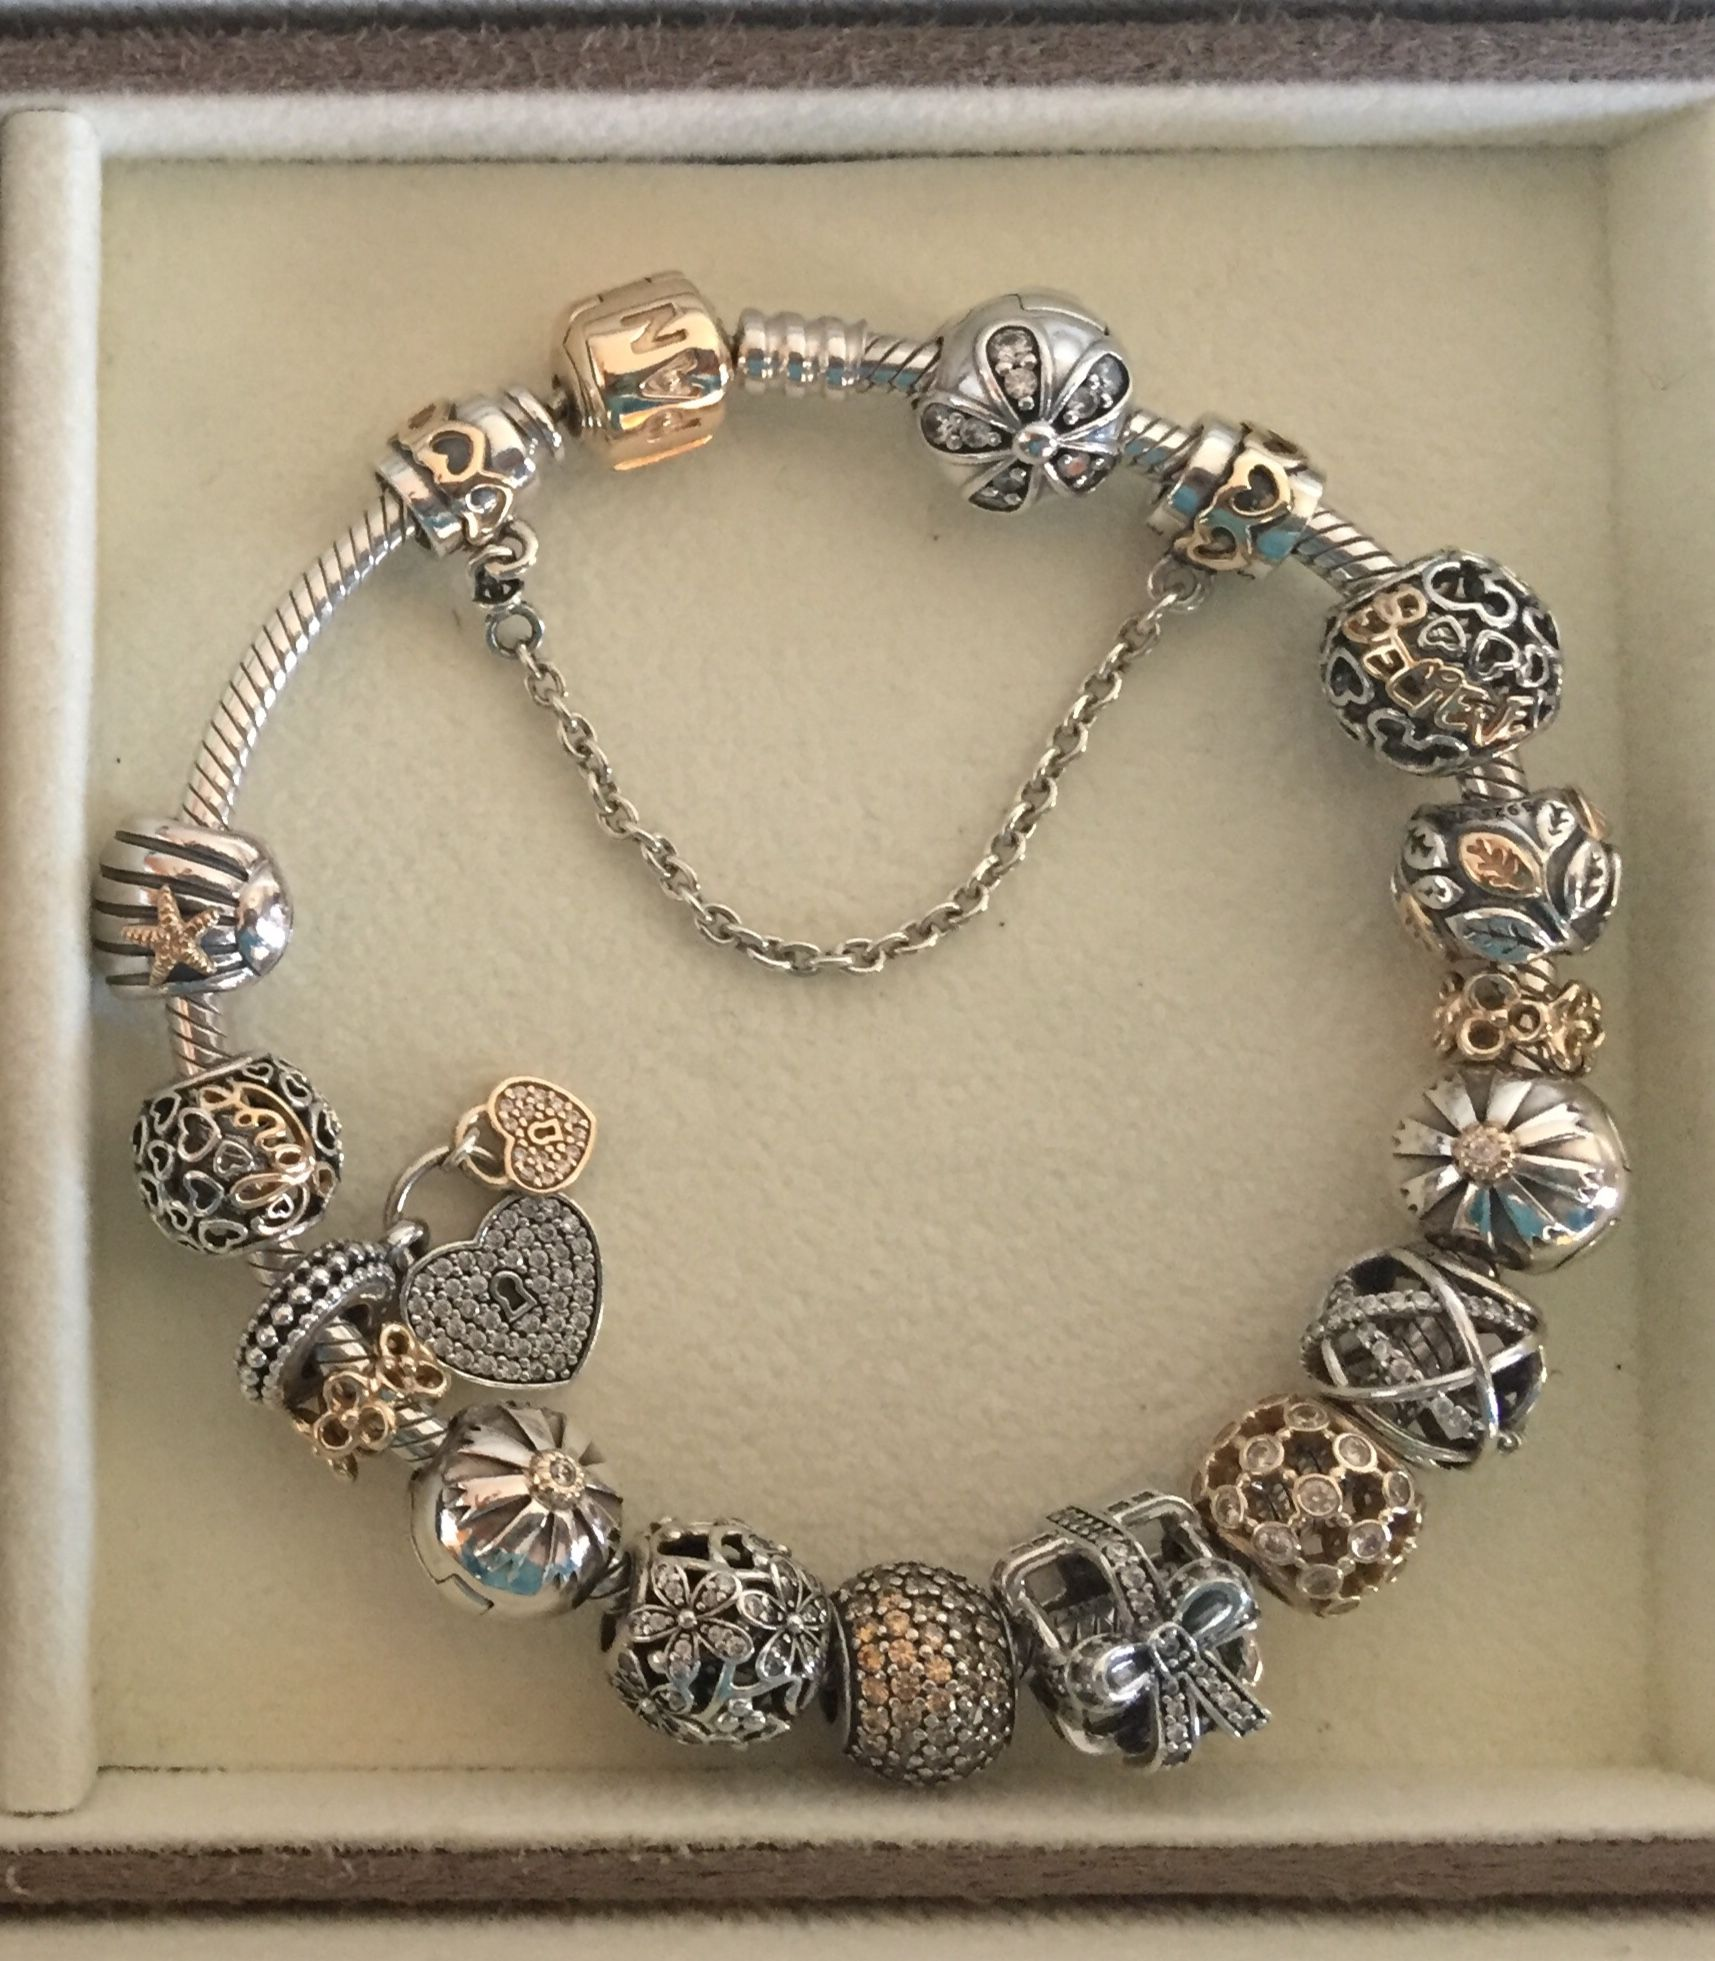 08883e0ae Pandora bracelet with two tone gold and silver charms | Accessories ...